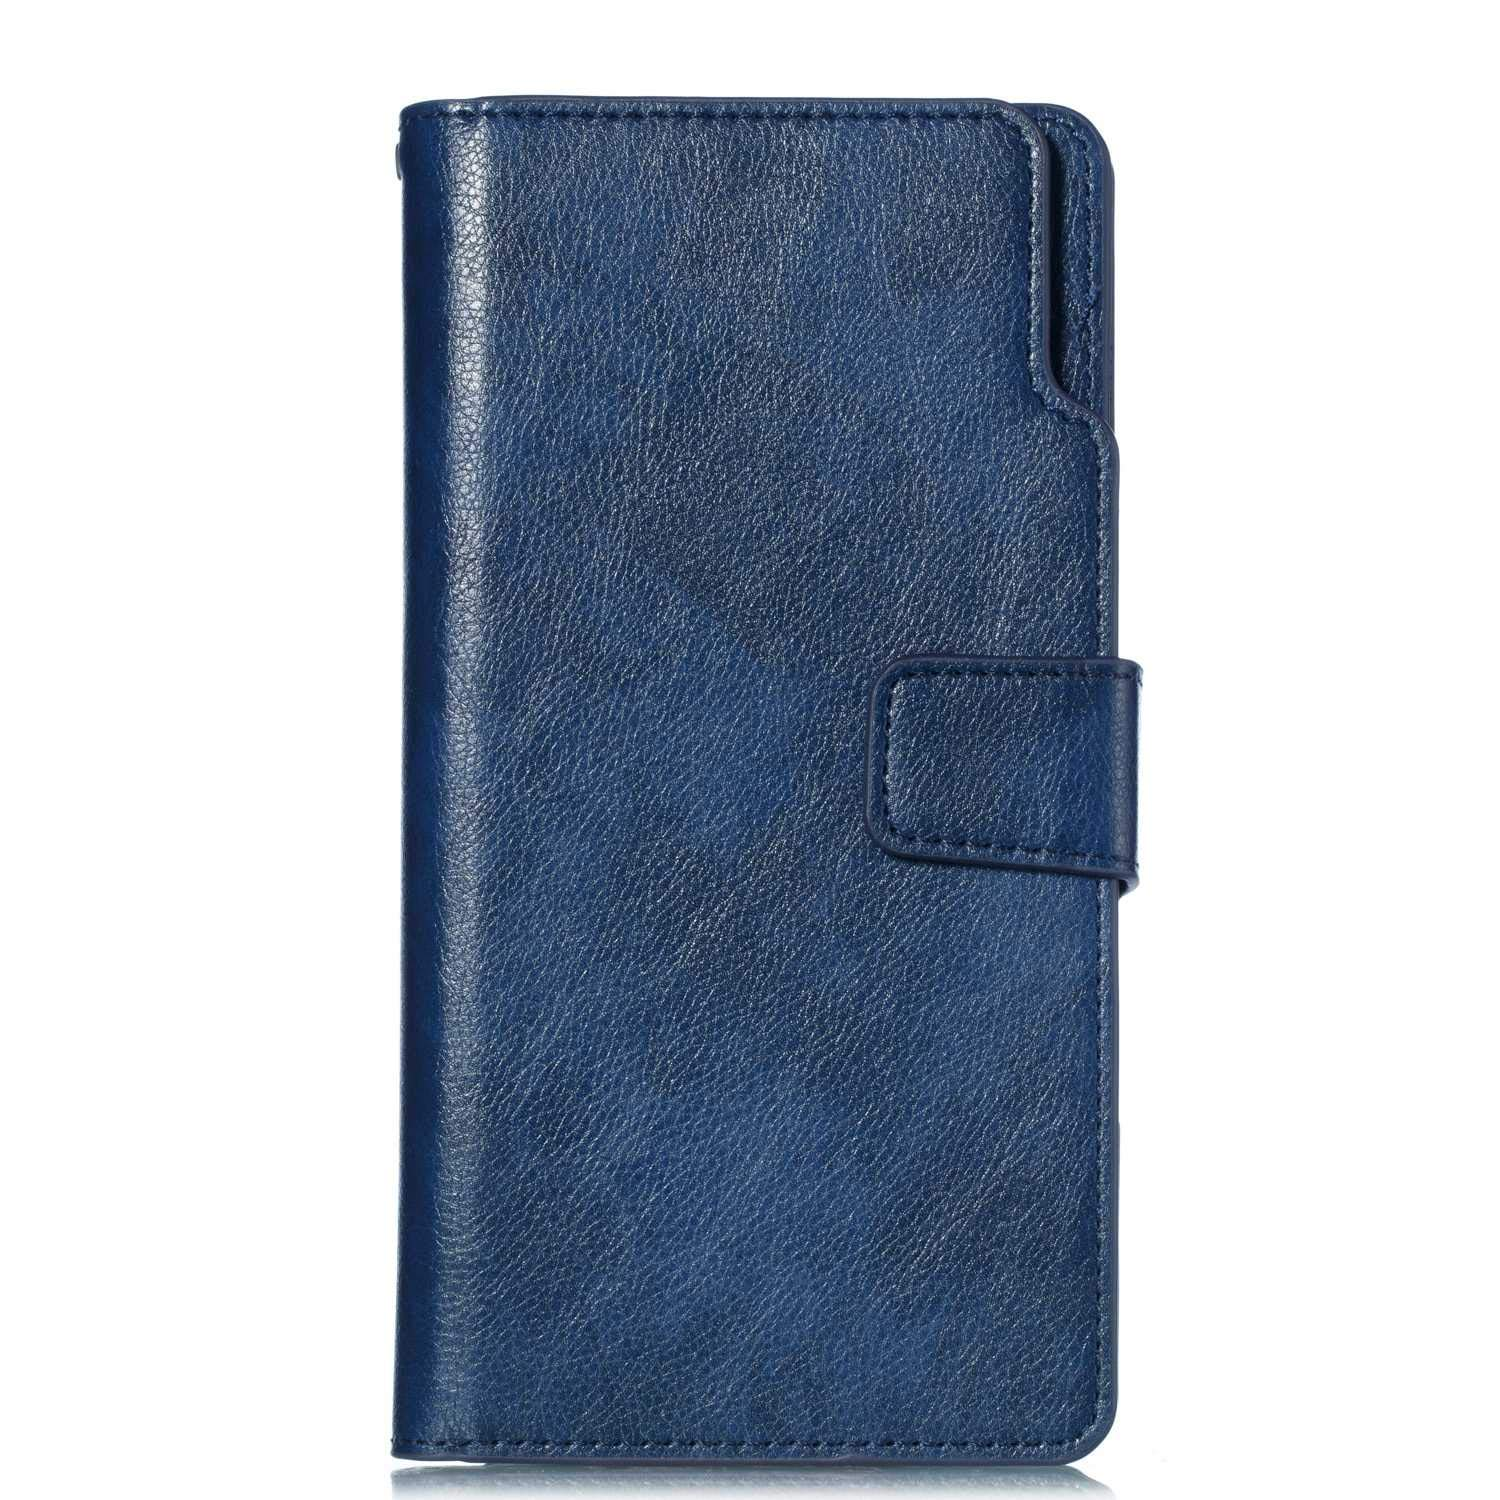 UNEXTATI Galaxy Note 8 Wallet Case, Leather Folding Flip Case with 9 Card Holder, Classic Design Protective Cover Bumper Case for Samsung Galaxy Note 8 (Blue #2)